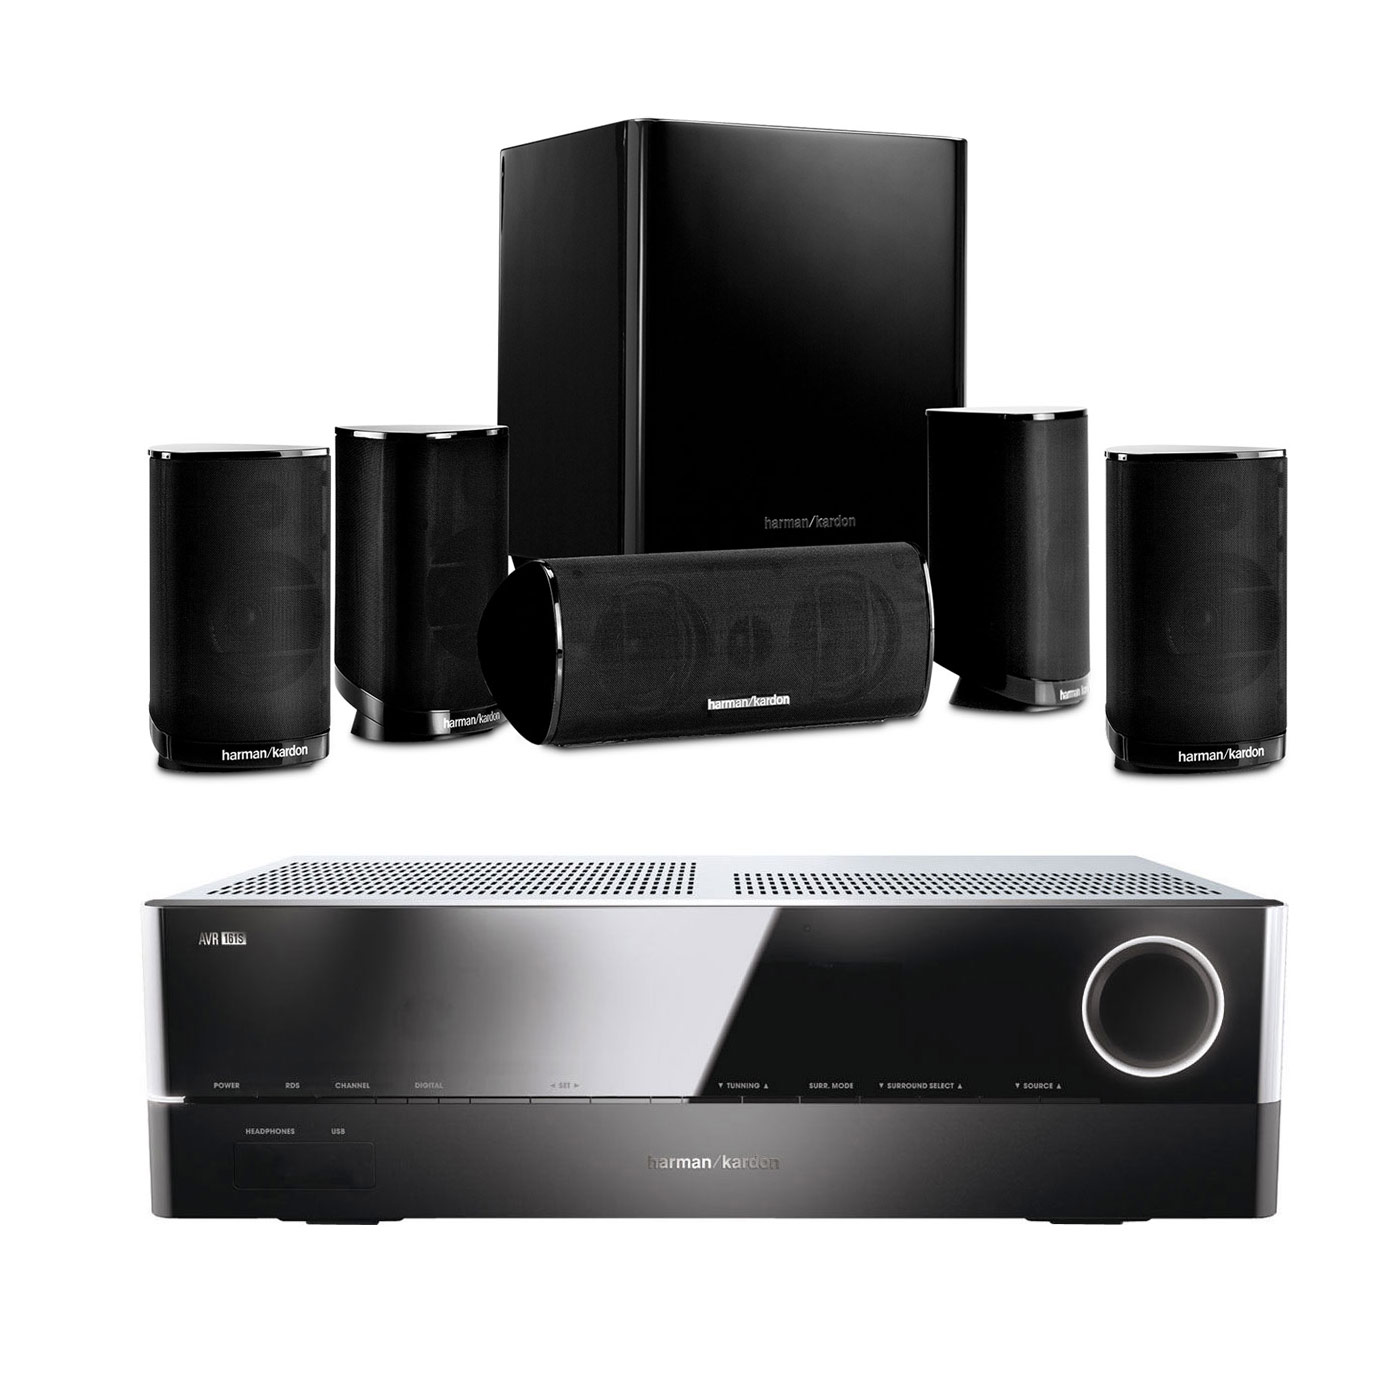 harman kardon avr 161s hkts 9 noir ensemble home. Black Bedroom Furniture Sets. Home Design Ideas